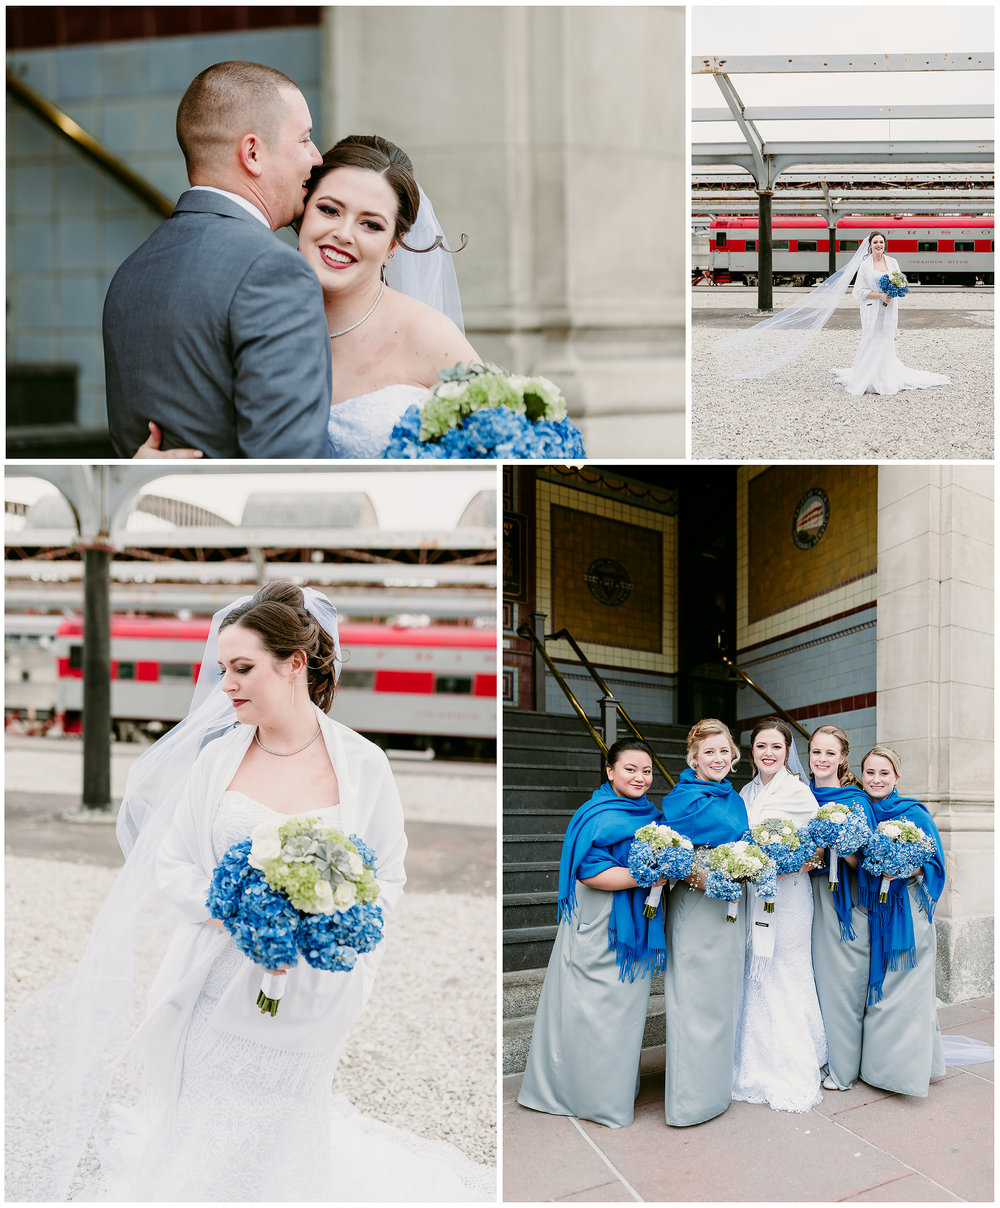 lauren_gripka_photography_basehor_kansas_wedding4.jpg